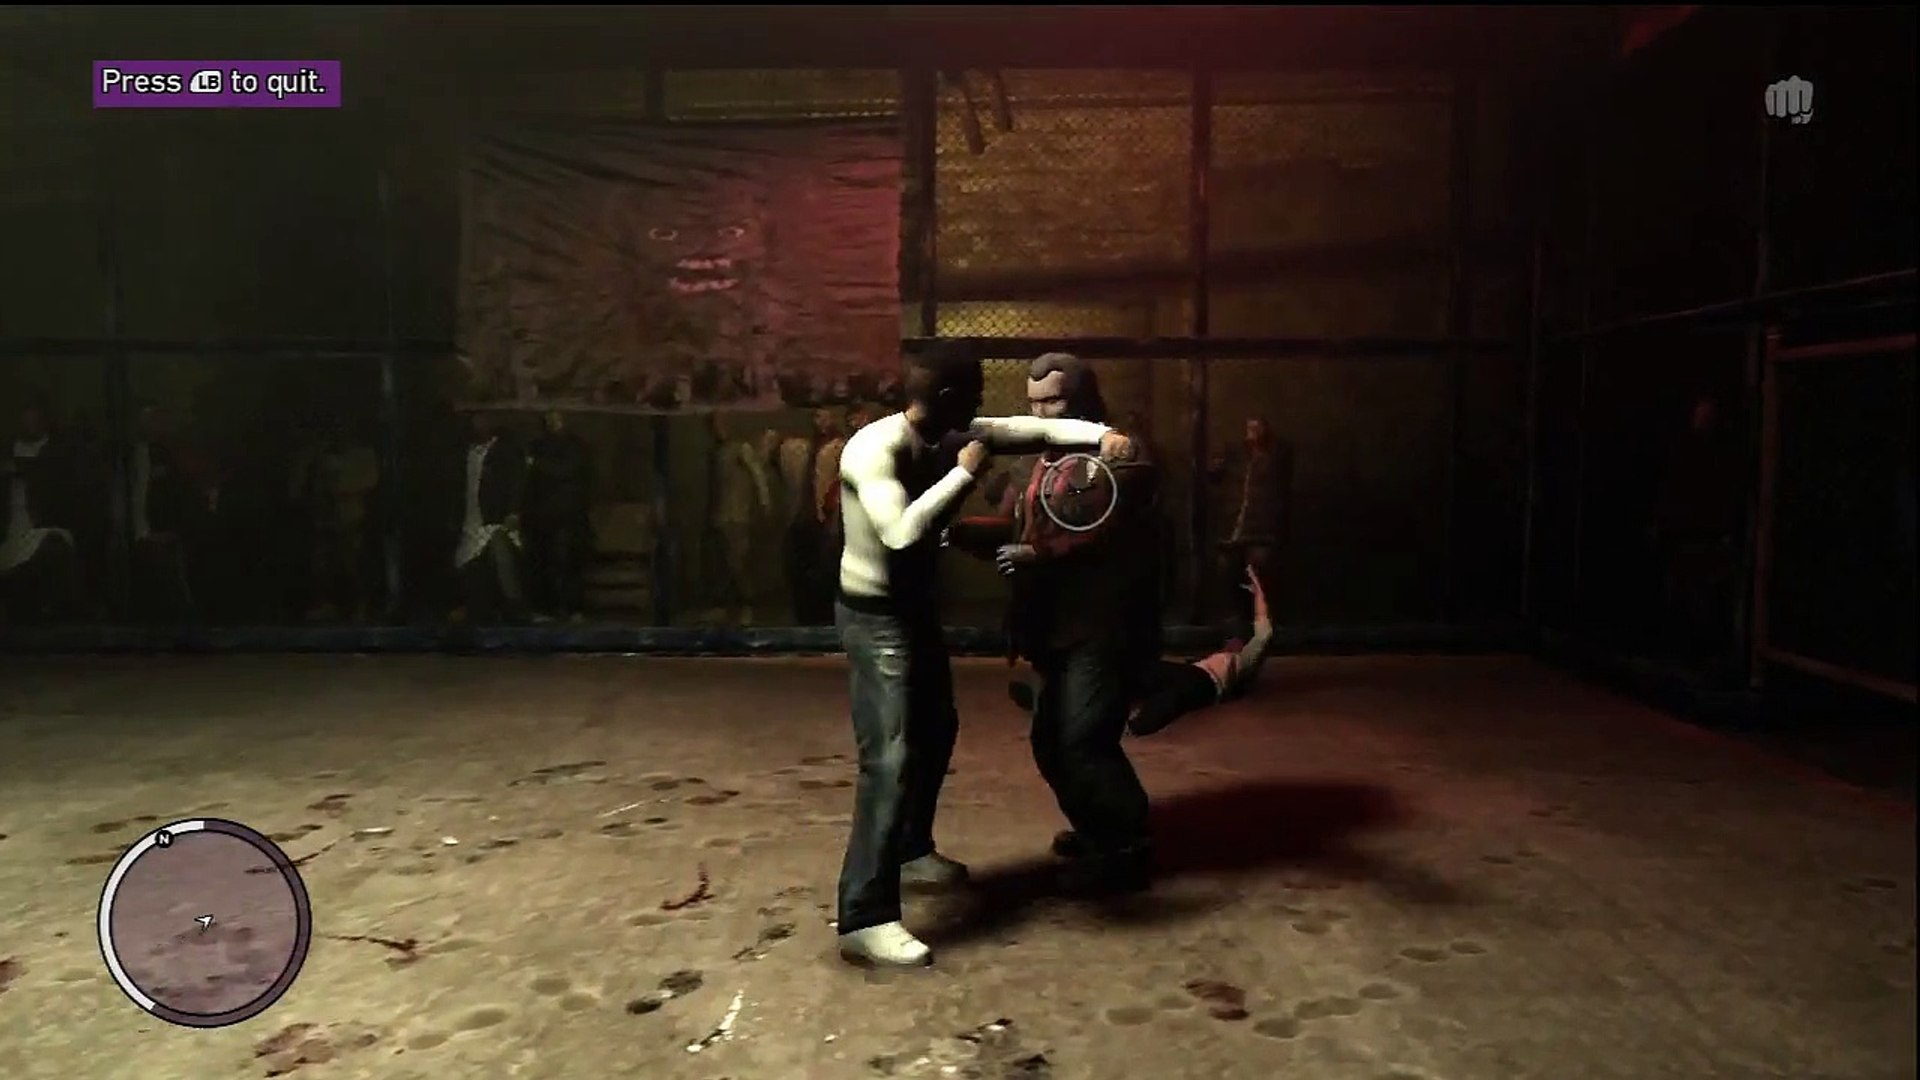 GTA IV: T.B.O.G.T L.C CAGE FIGHTER (A Knife?!?!?)